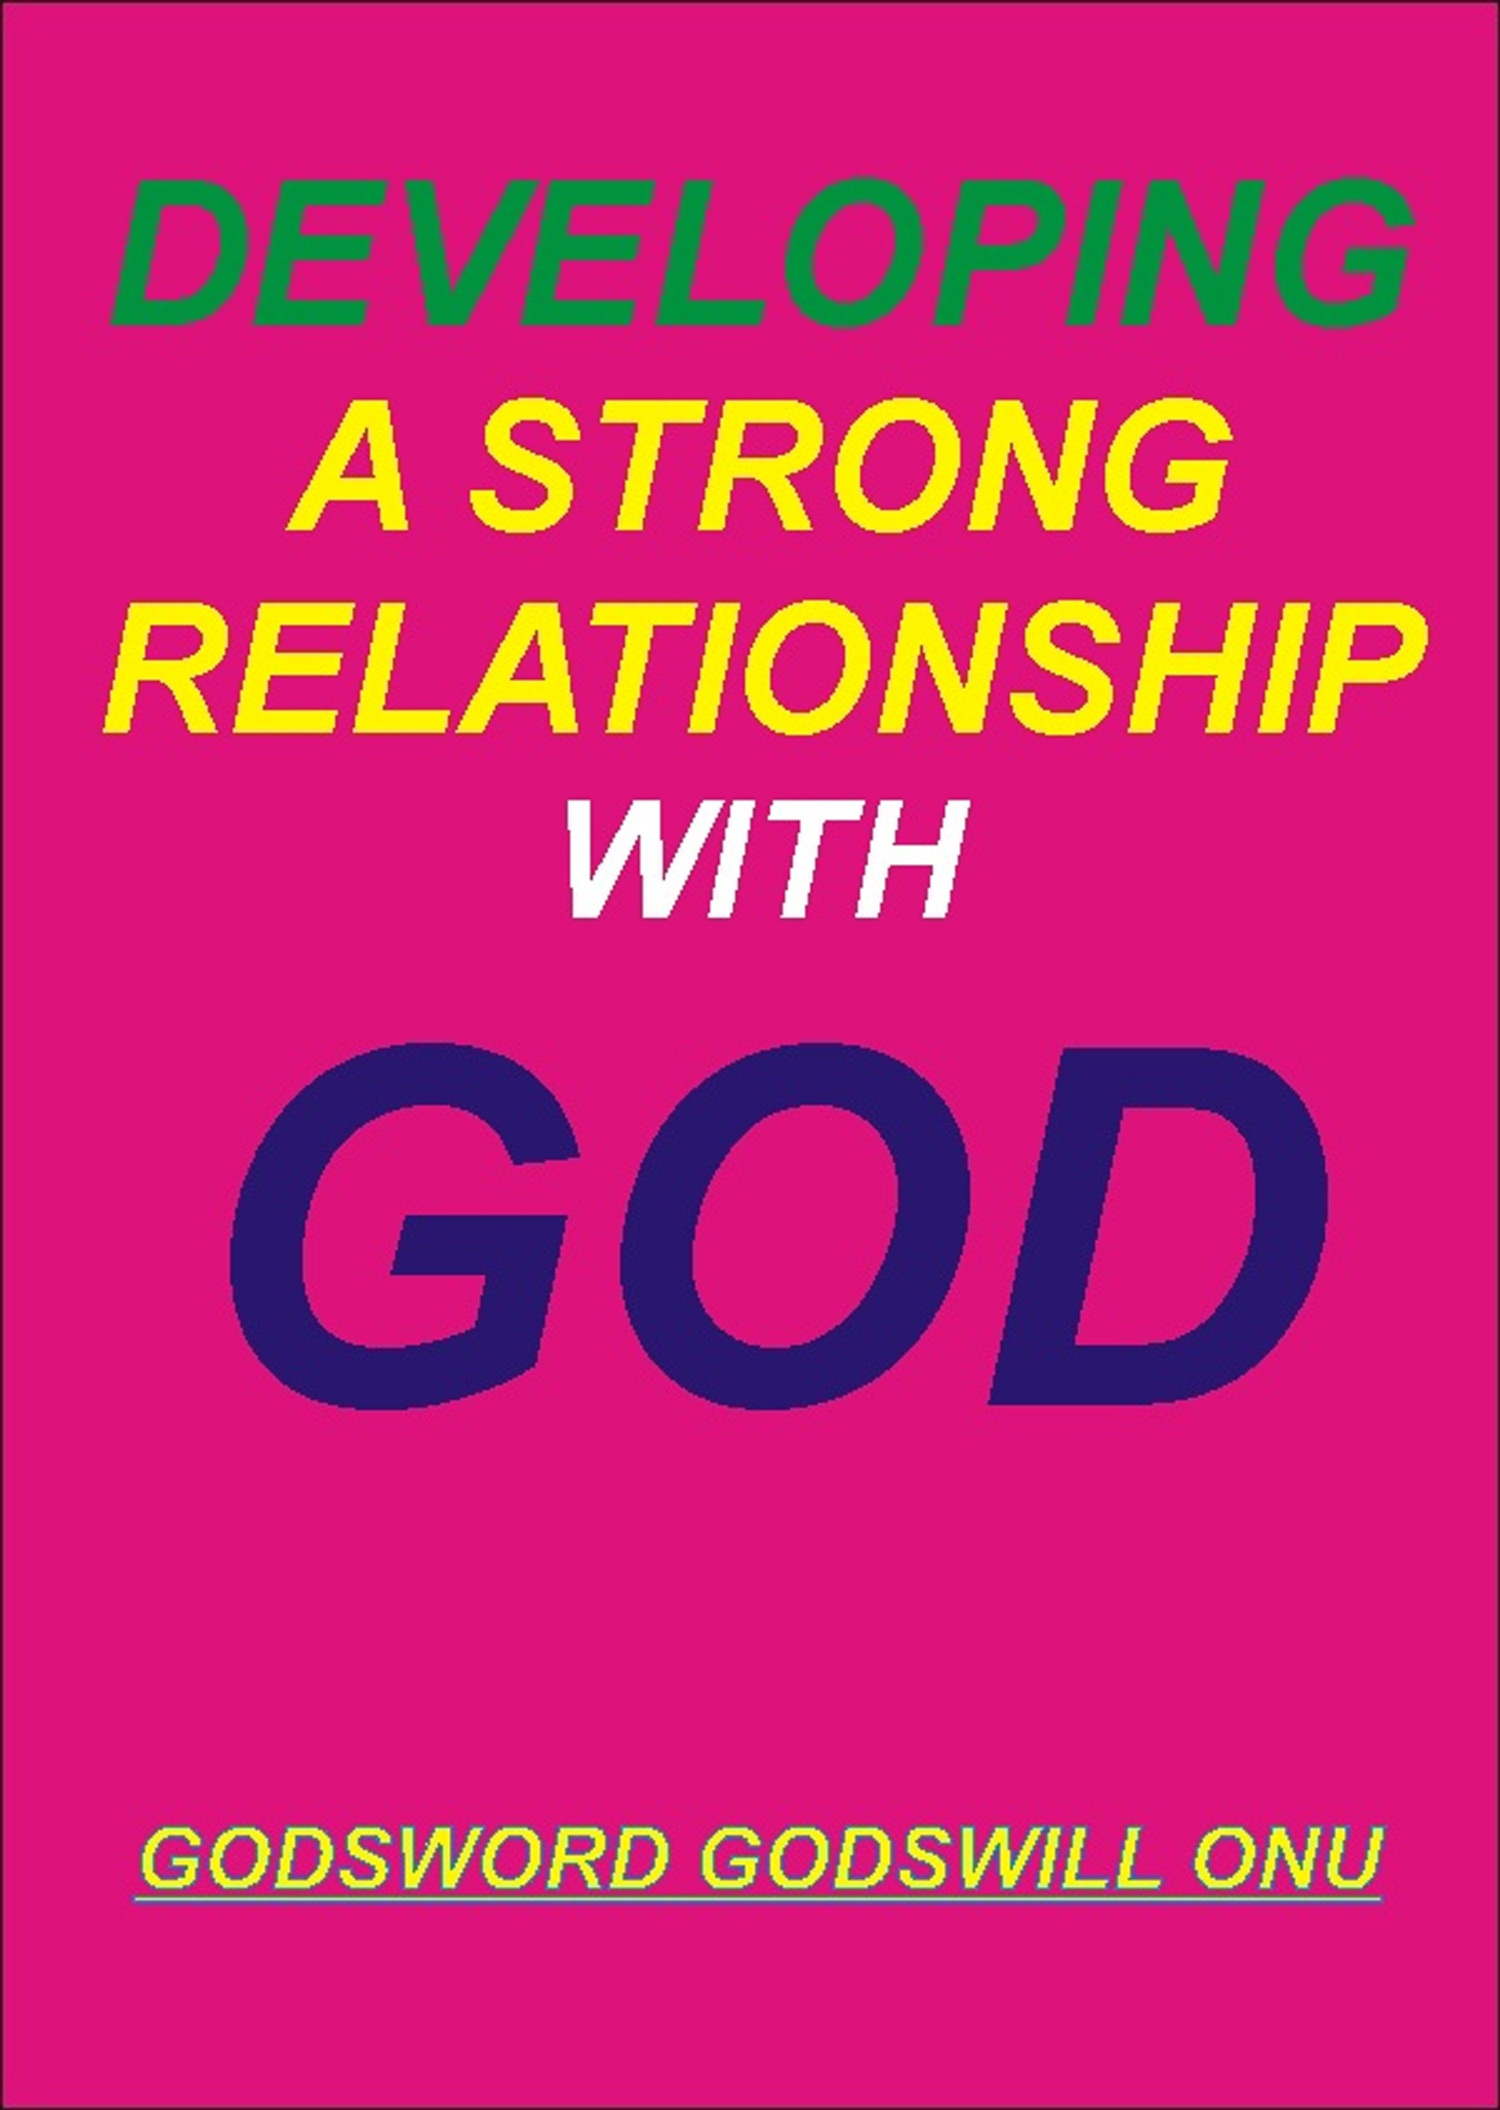 how to have a strong relationship with god